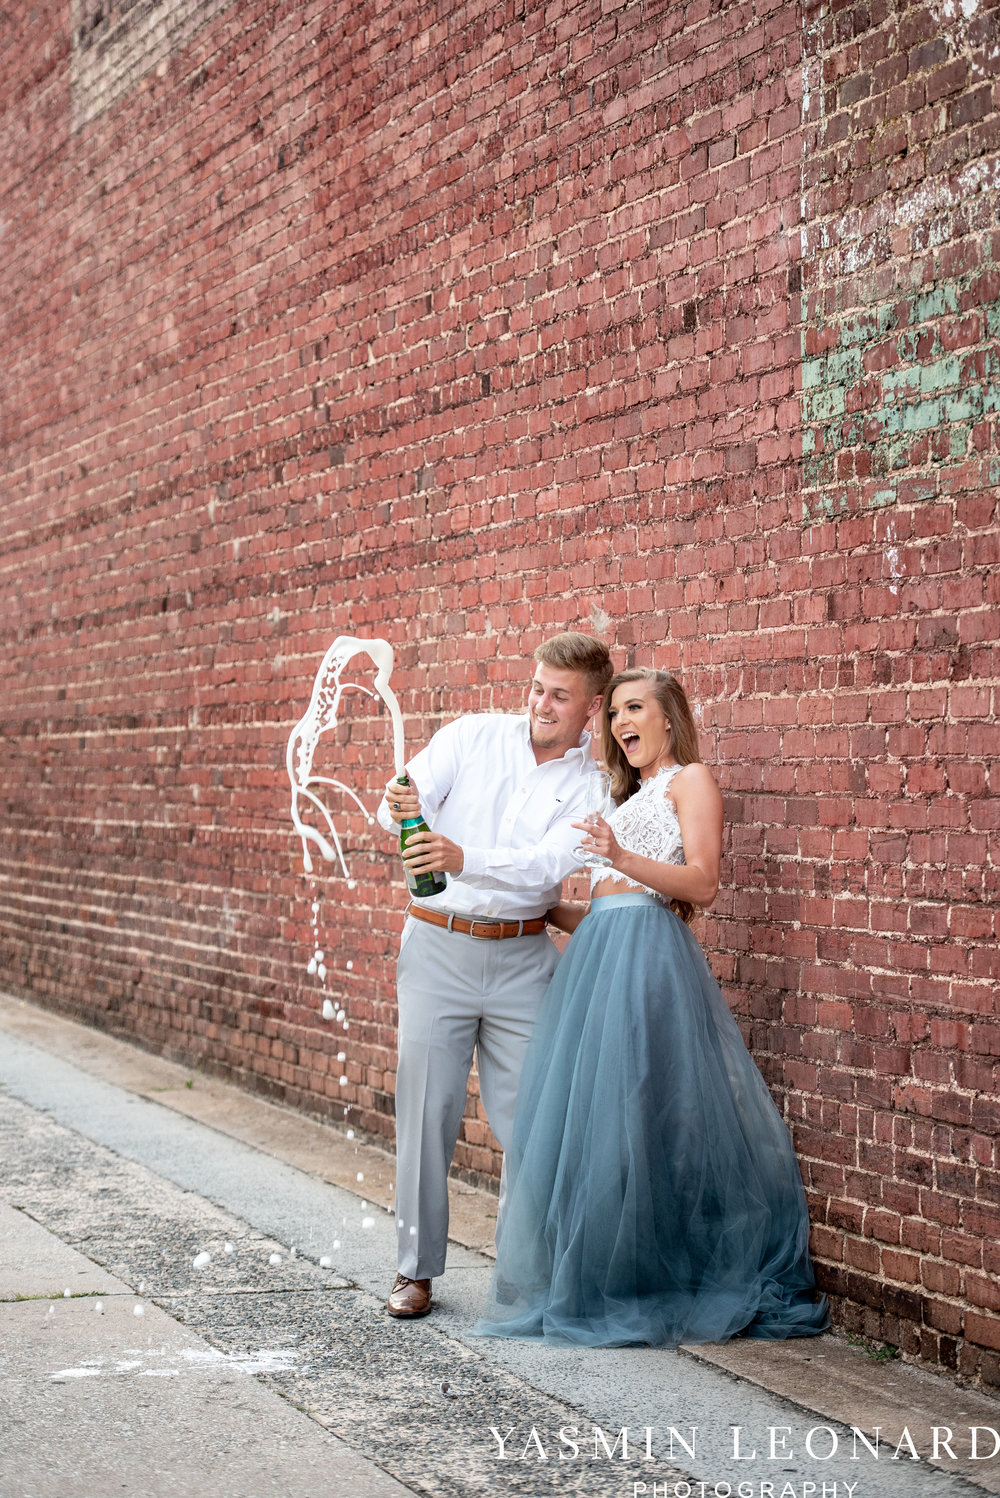 Downtown Winston Salem - Winston Salem Engagement Session - Winston Salem NC - Engagement Session at Bailey Park - The Millennium Center - NC Wedding Venues - How to Engagement Session - Yasmin Leonard Photography-16.jpg